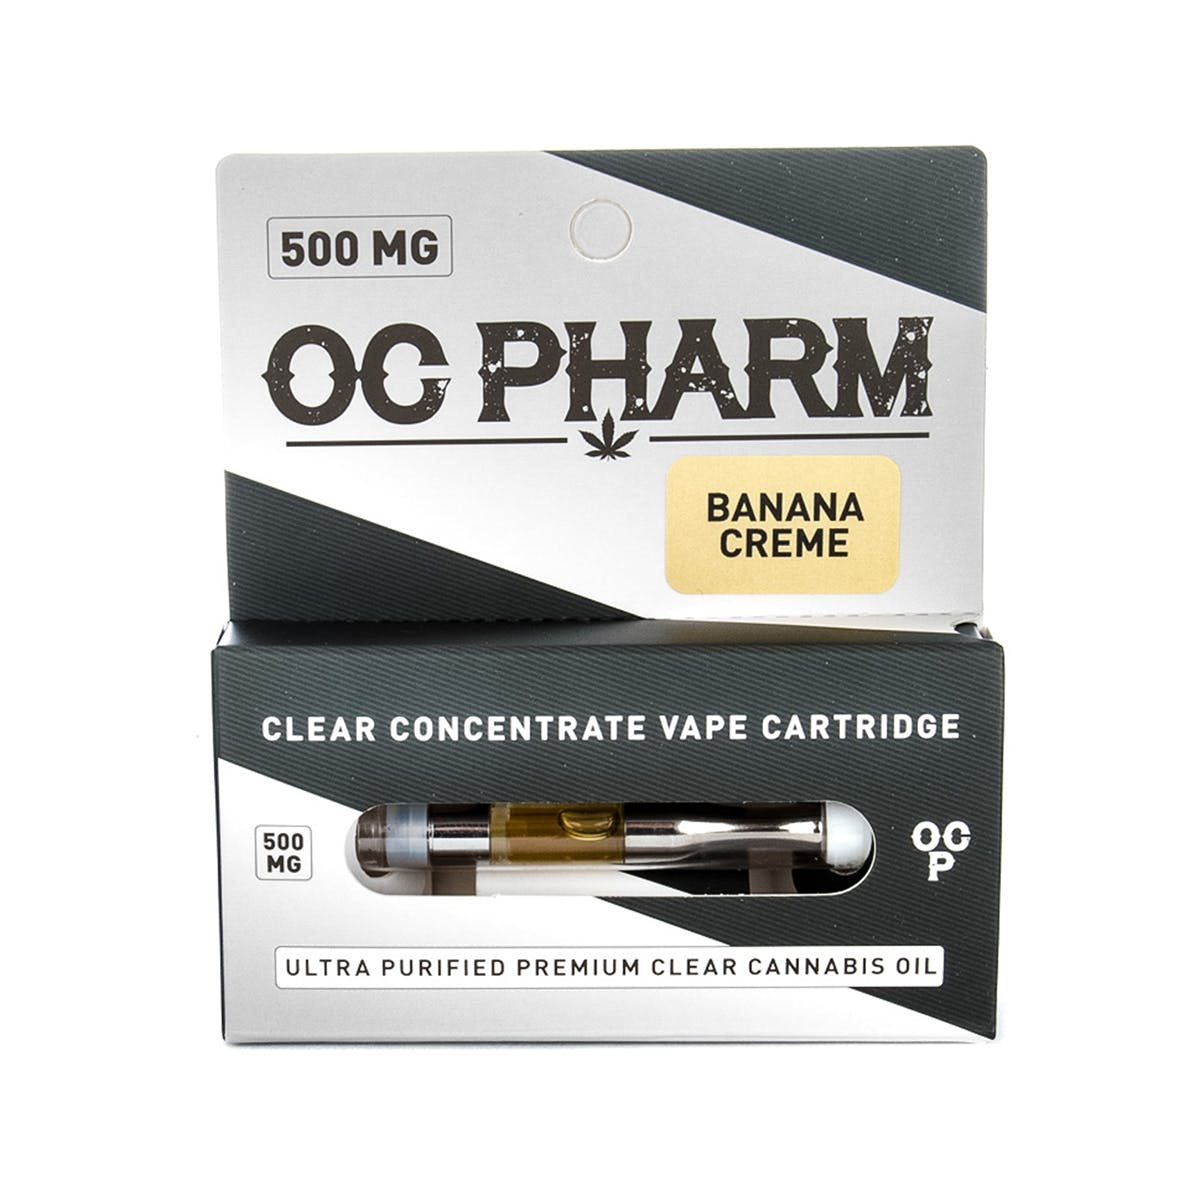 marijuana-dispensaries-fire-and-glory-fullerton-in-fullerton-banana-creme-clear-cartridge-2c-500mg